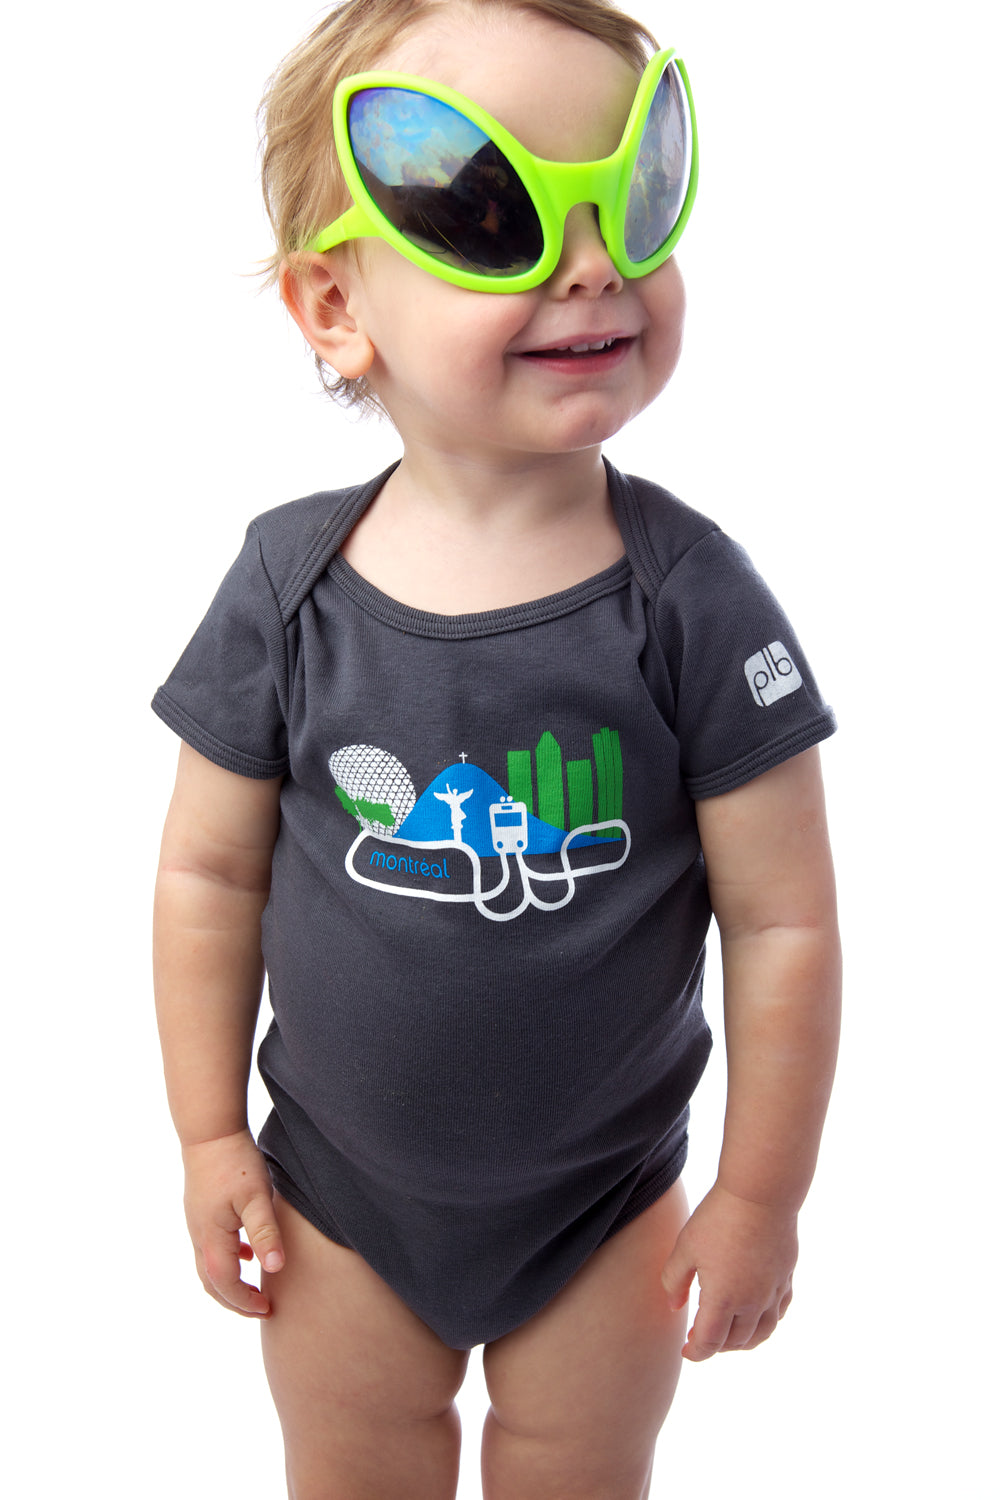 Montreal Baby Onesie clearance